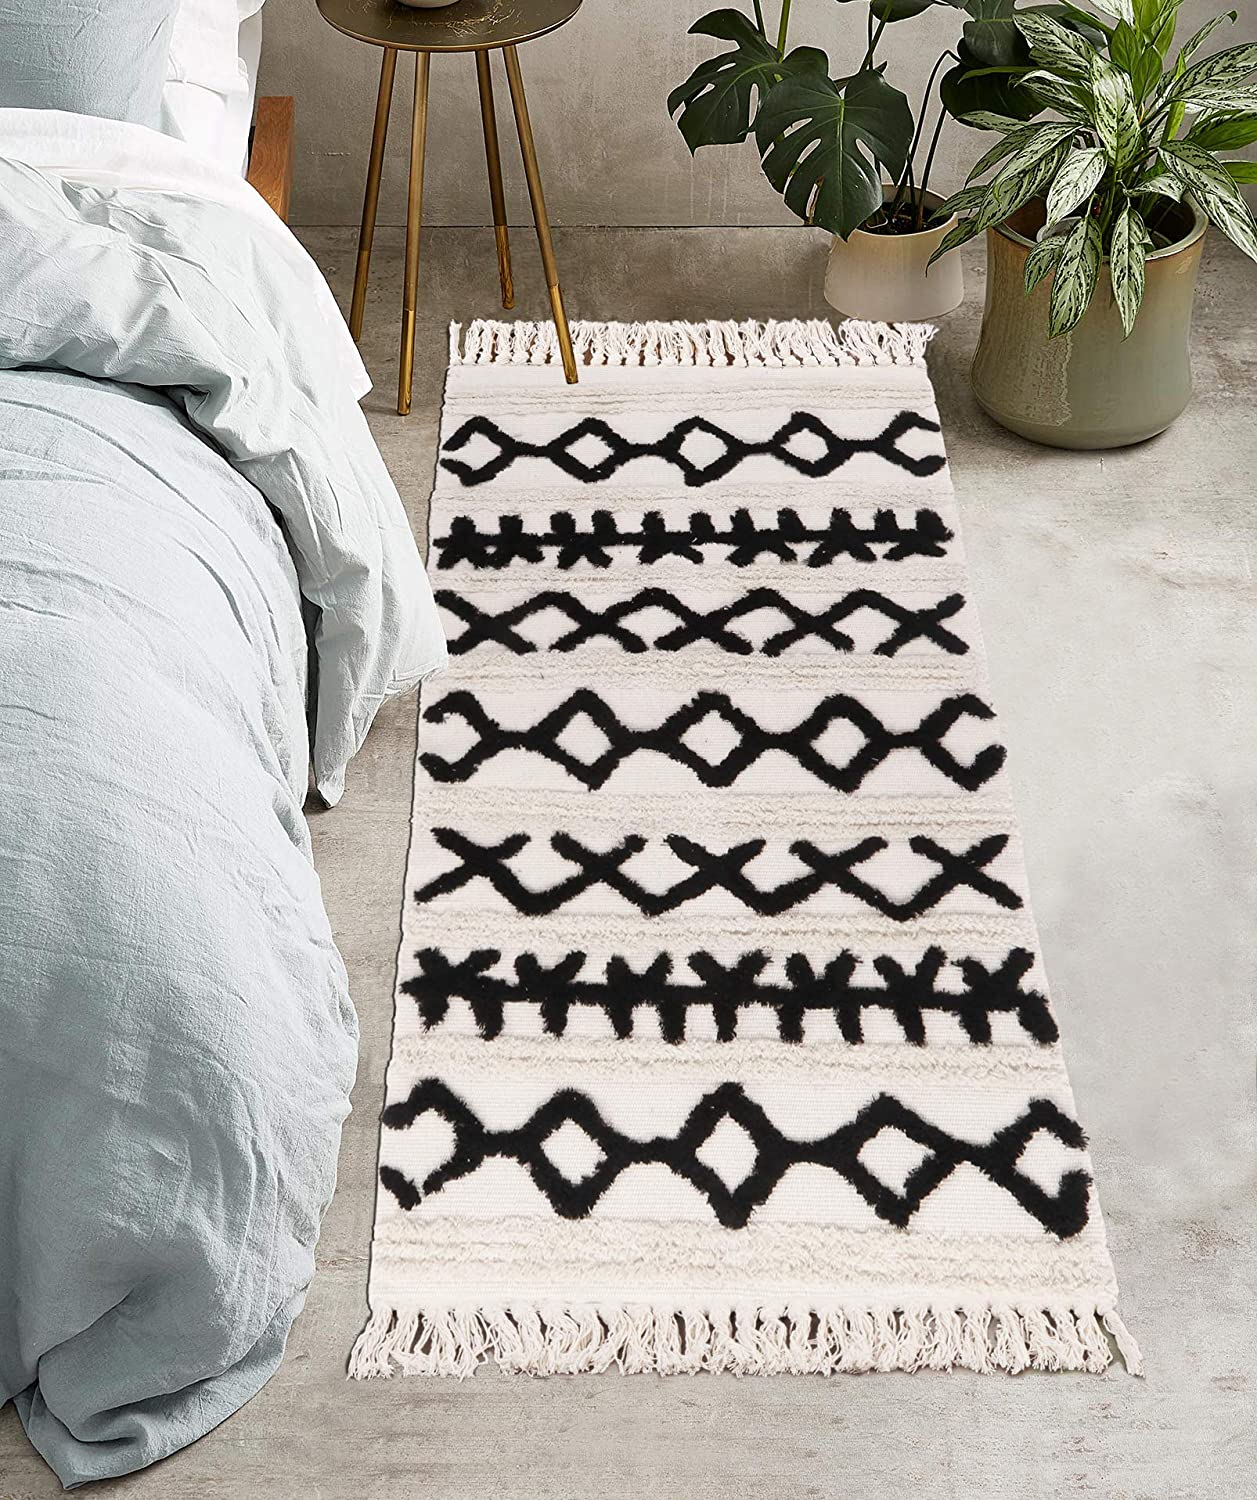 Uphome Tufted Cotton Runner Rug 2' x 4.3' Modern Geometric Boho Area Rugs with Chic Tassel Fringe Hand Woven Throw Rugs Machine Washable Floor Carpet for Laundry Hallway Porch Bedroom Kitchen